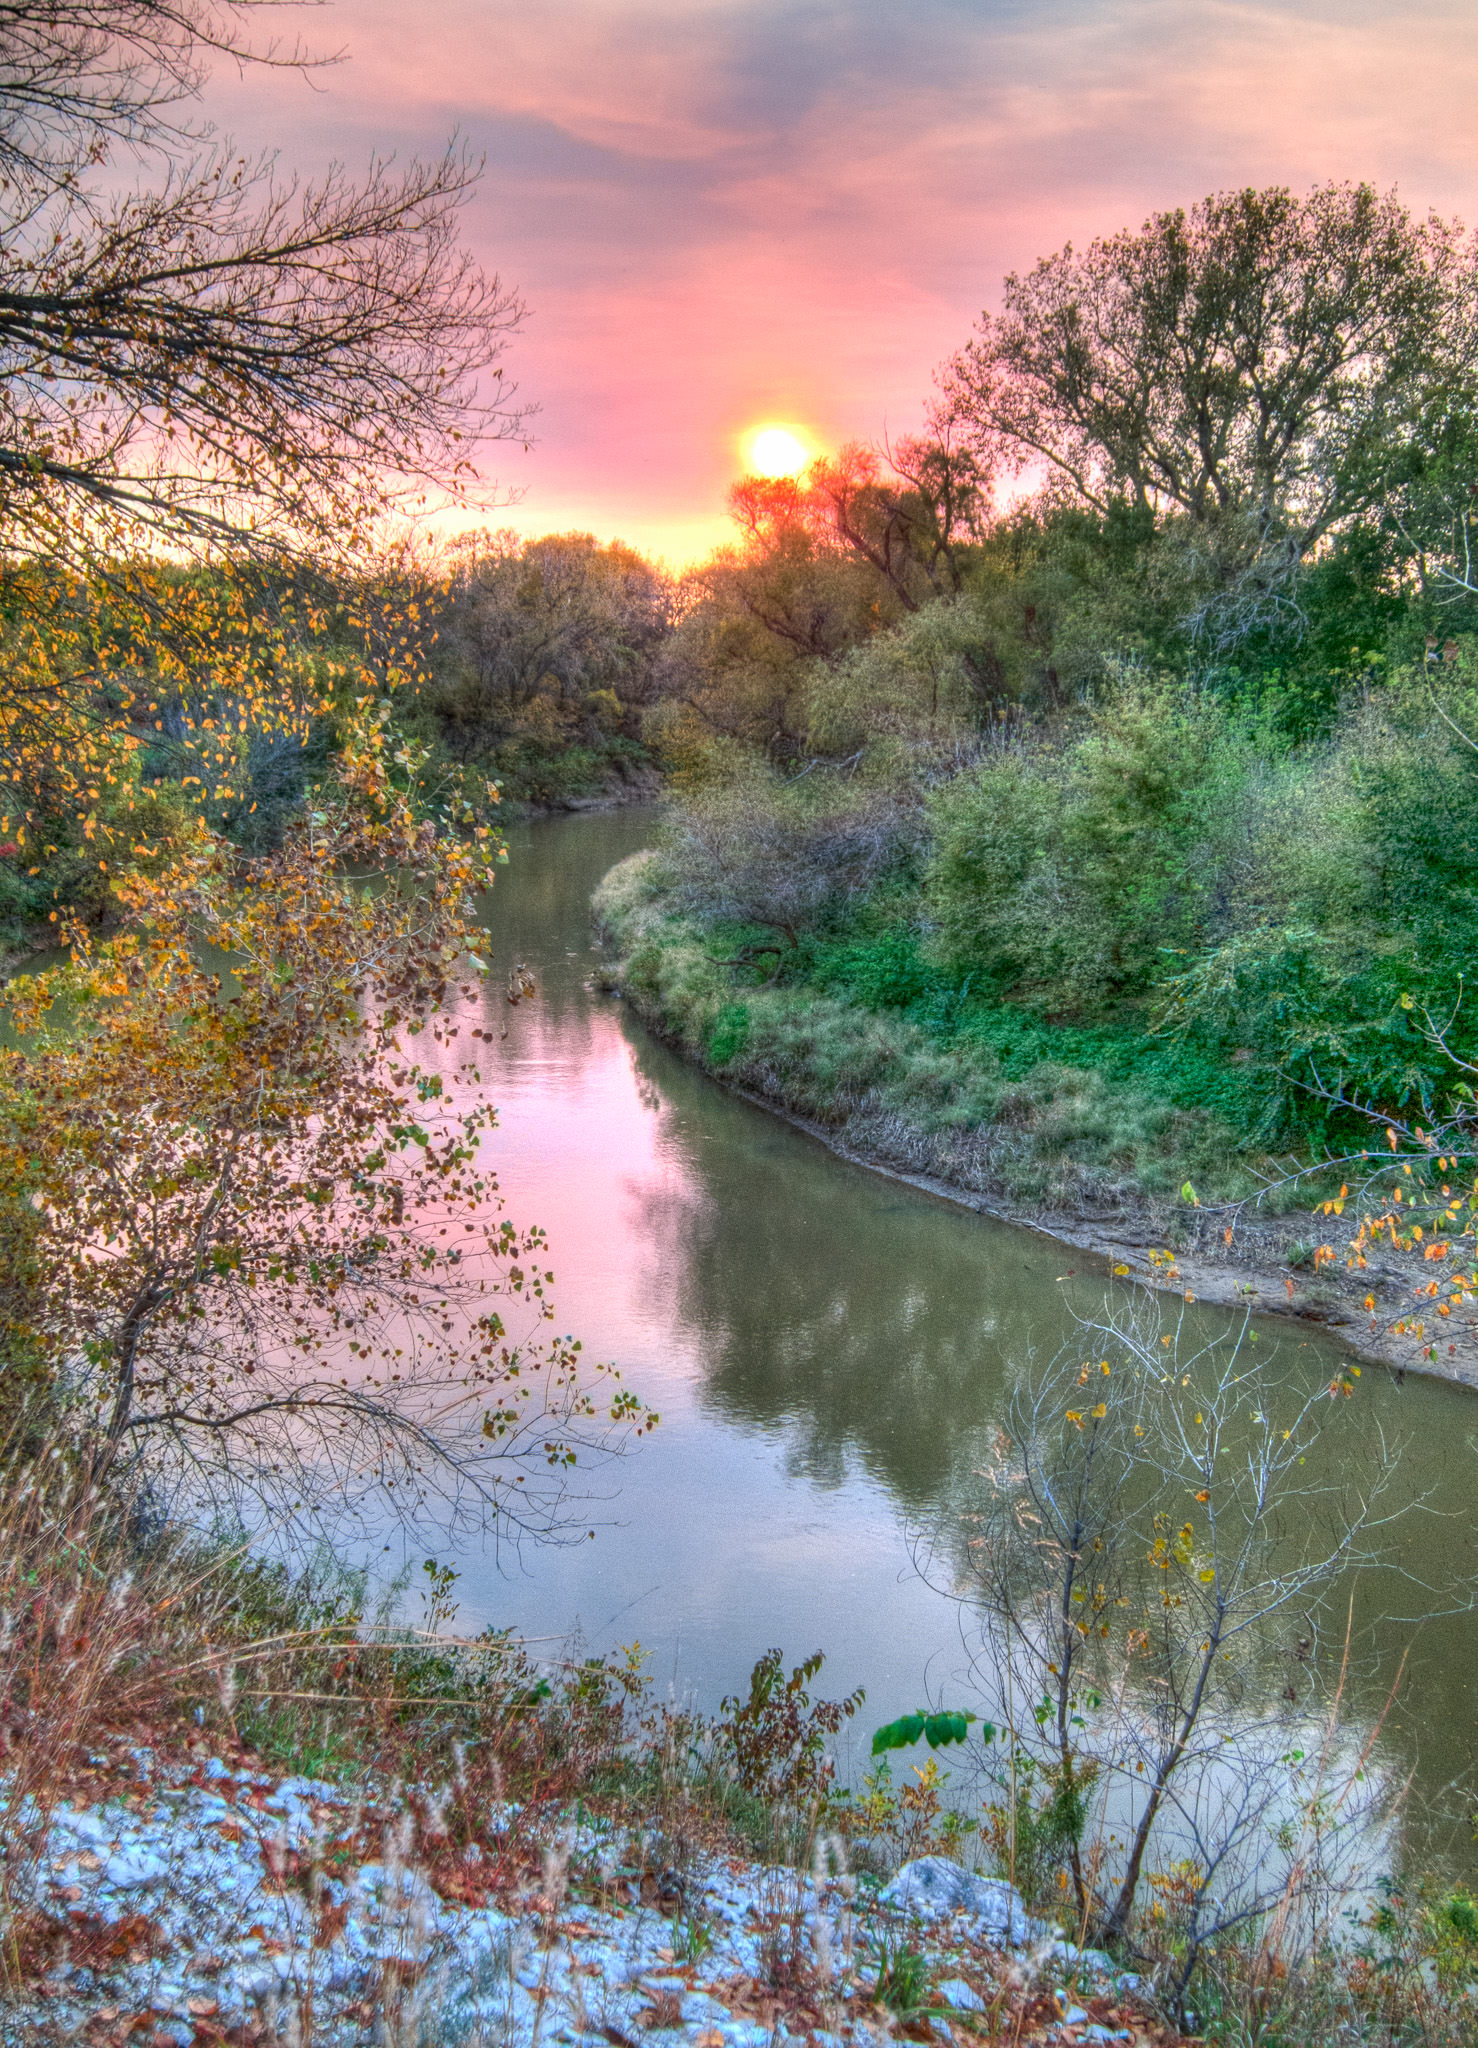 Sunset on the Smoky Hill River